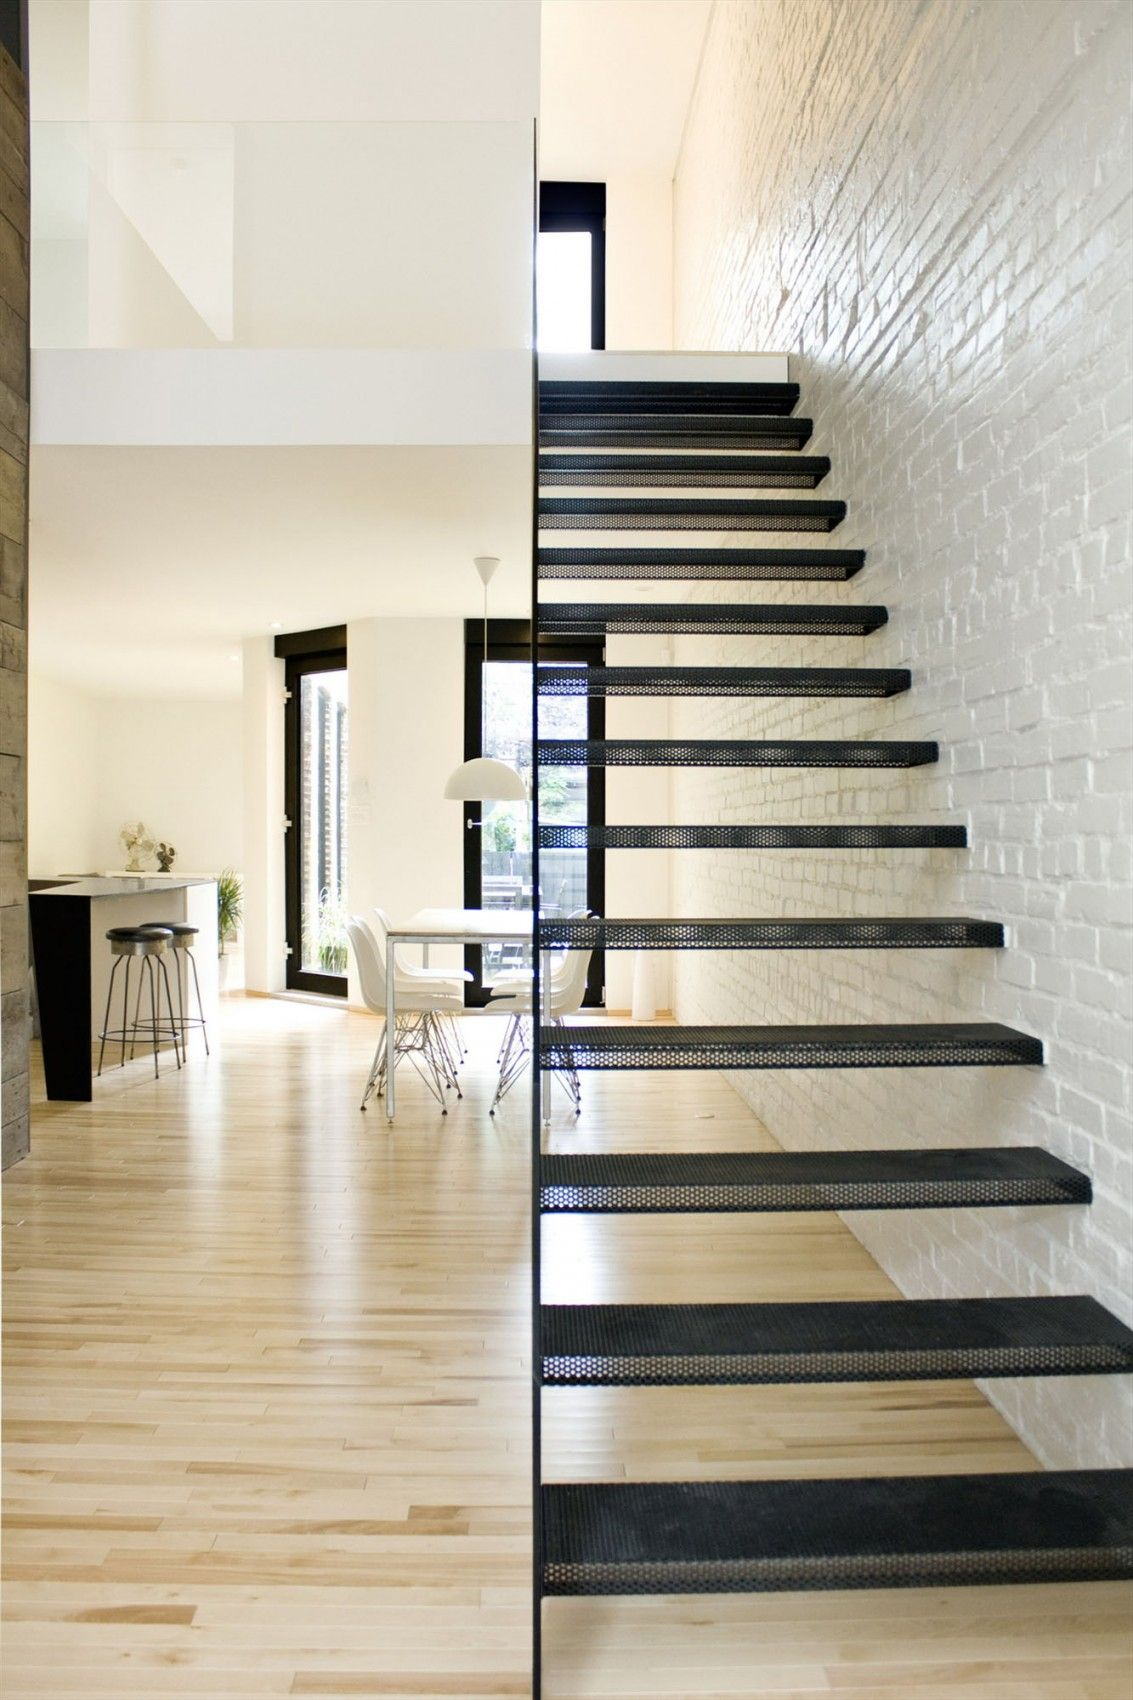 Maison Drolet 2 By La Shed Architecture Staircase Design Contemporary House Design Modern Staircase